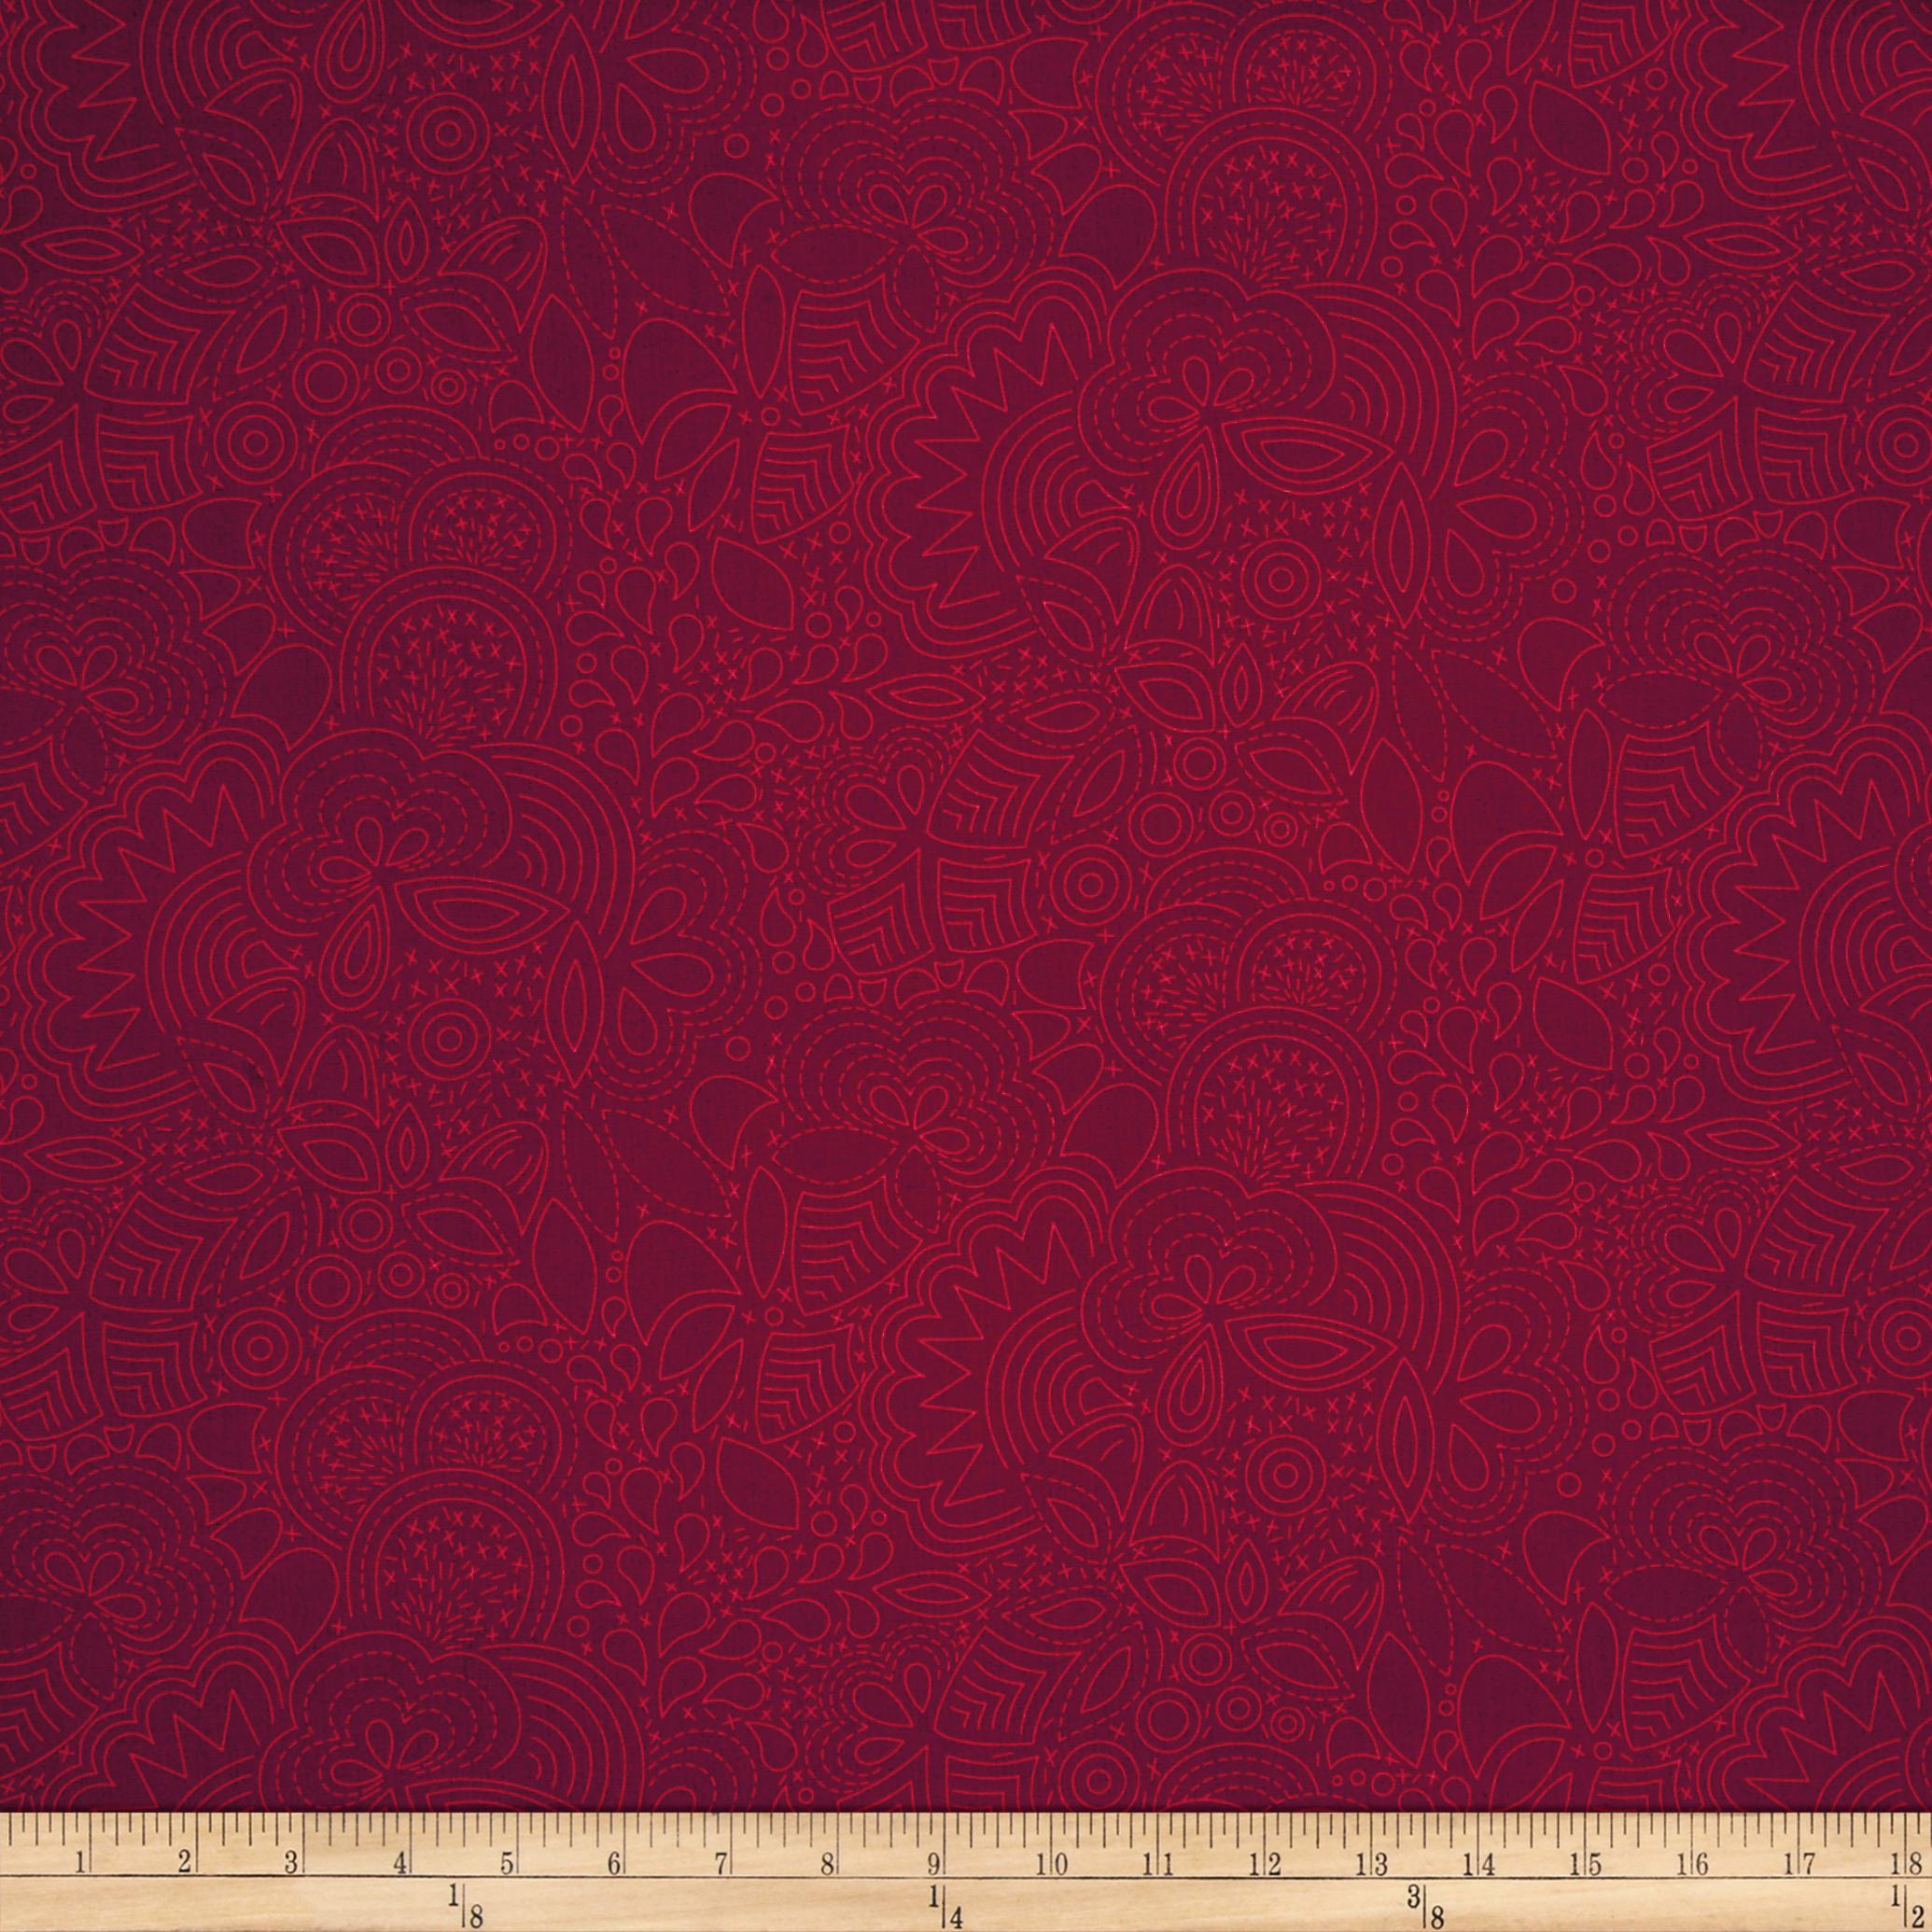 Alison Glass Seventy Six Stitched Auburn Red Fabric by Andover & Makower in USA